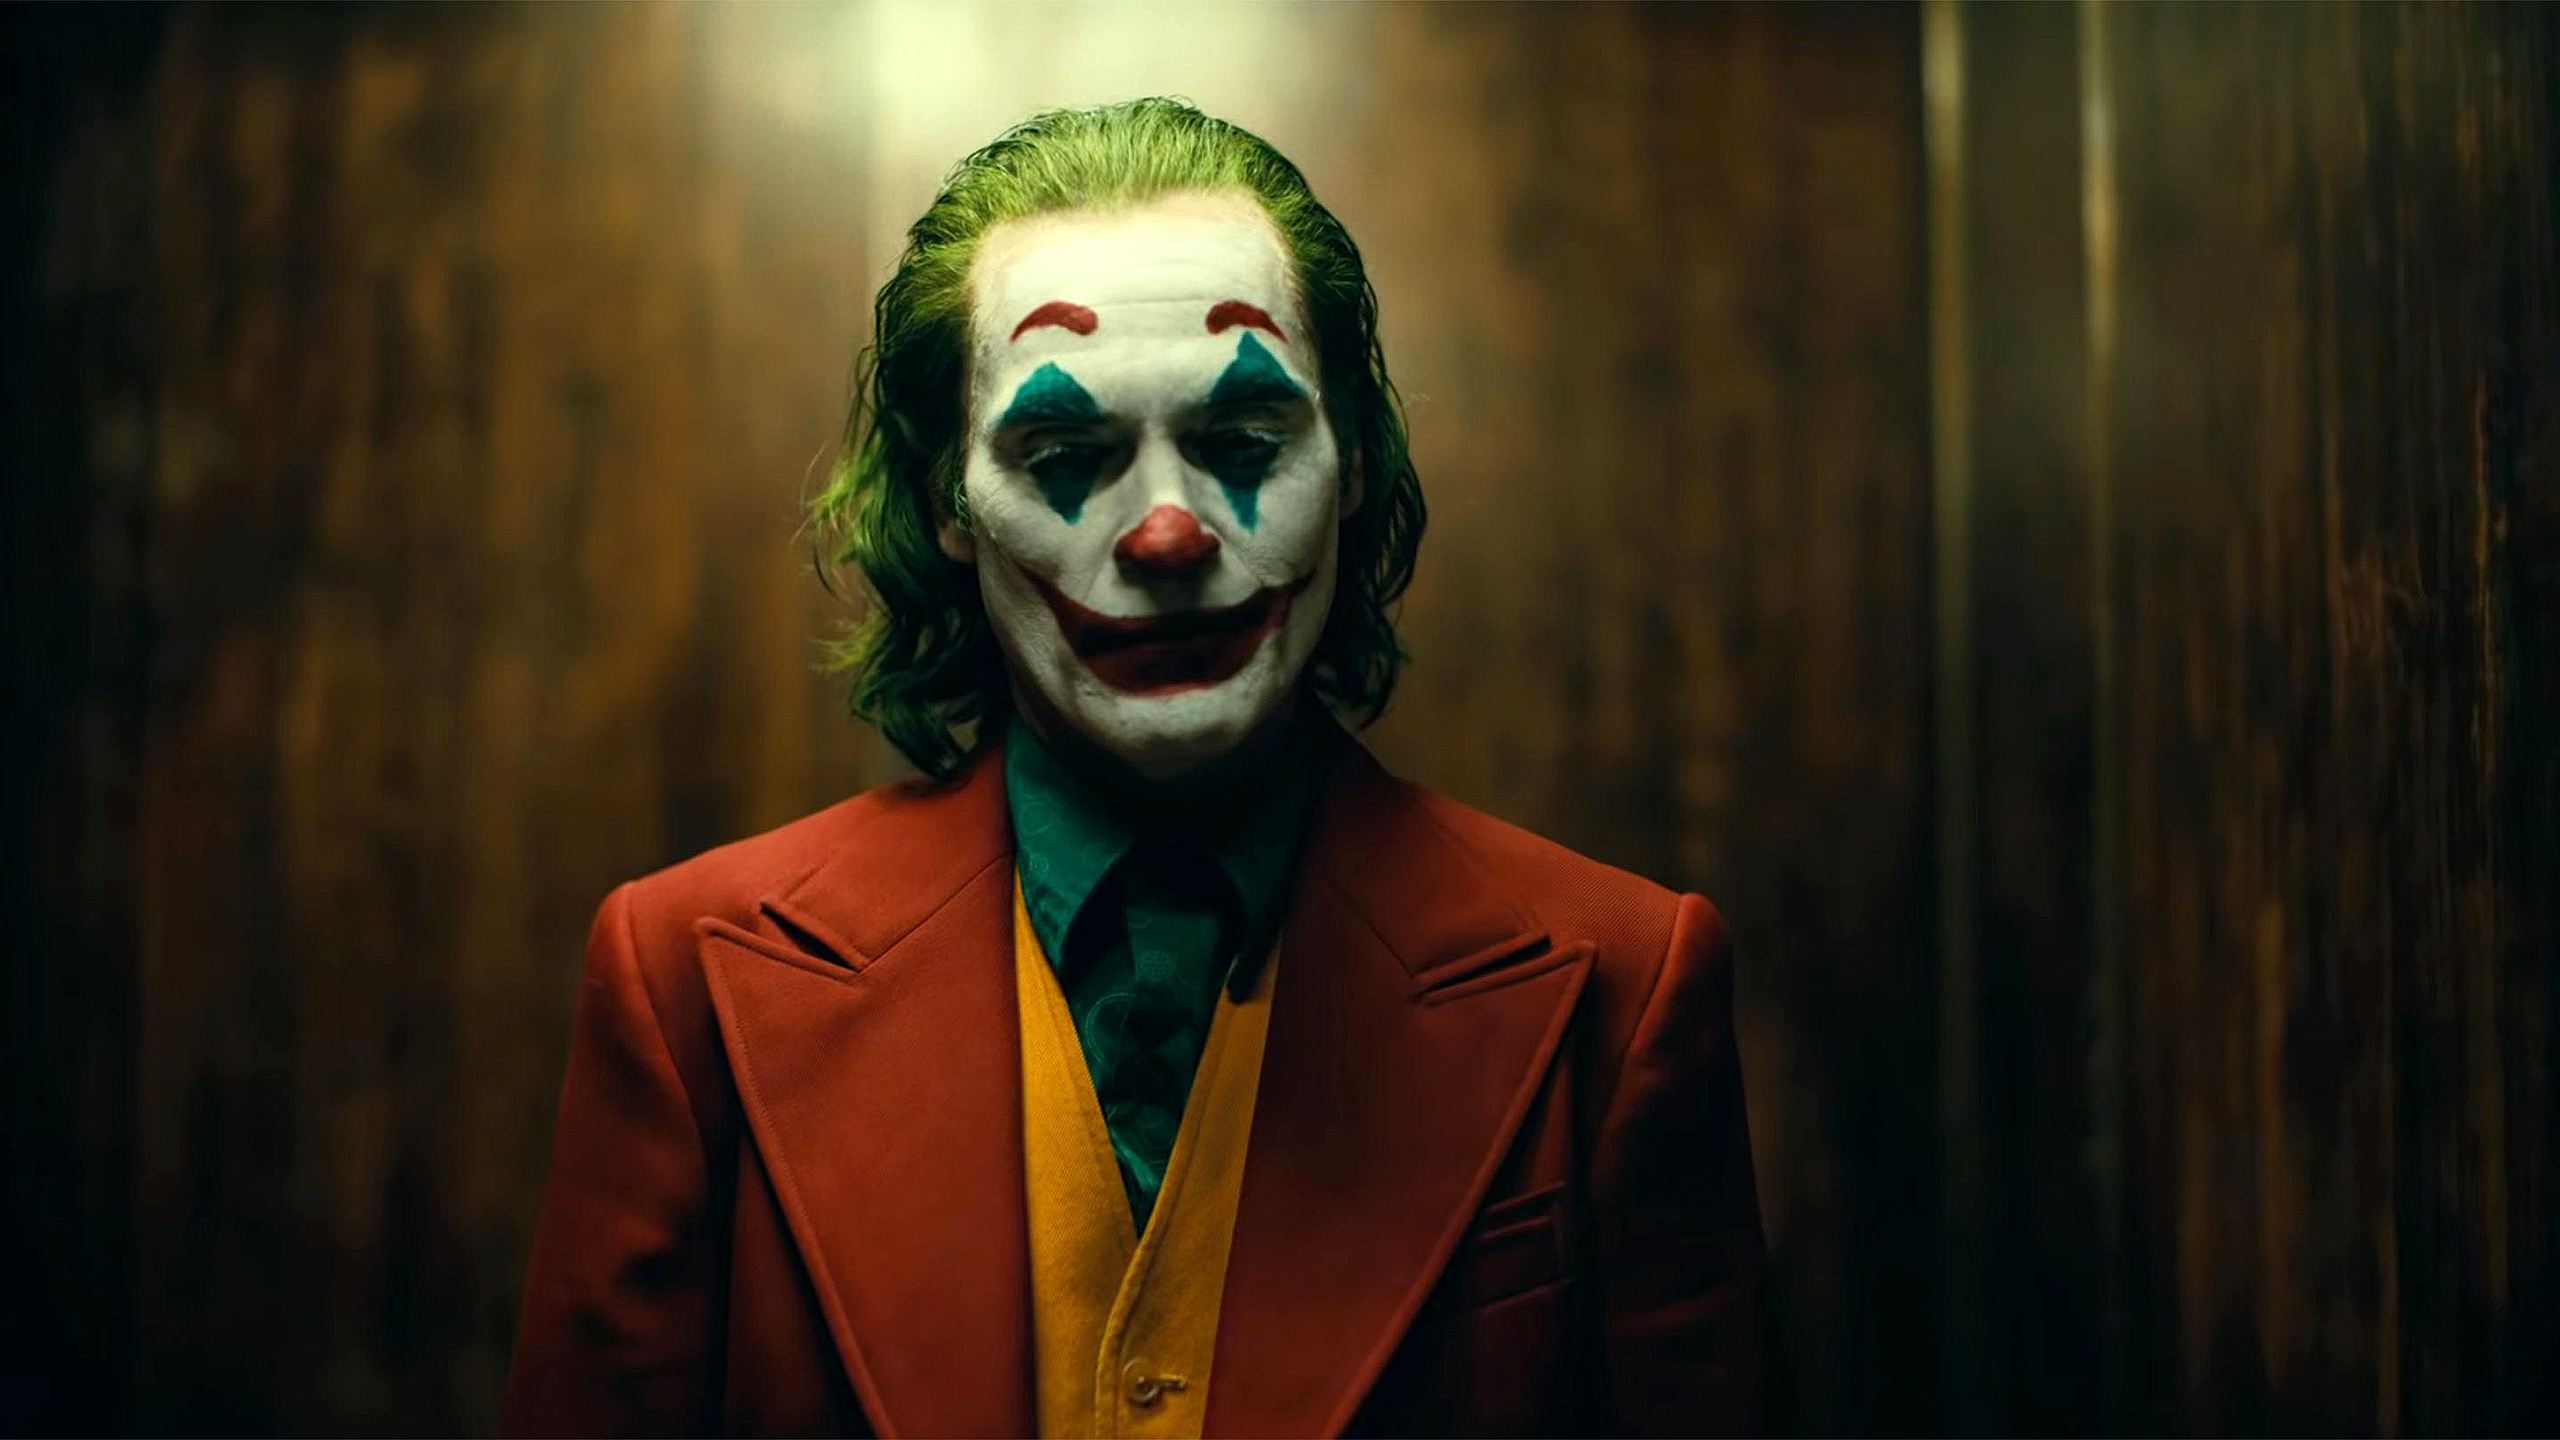 Joker 2019 Hd Movies 4k Wallpapers Images Backgrounds